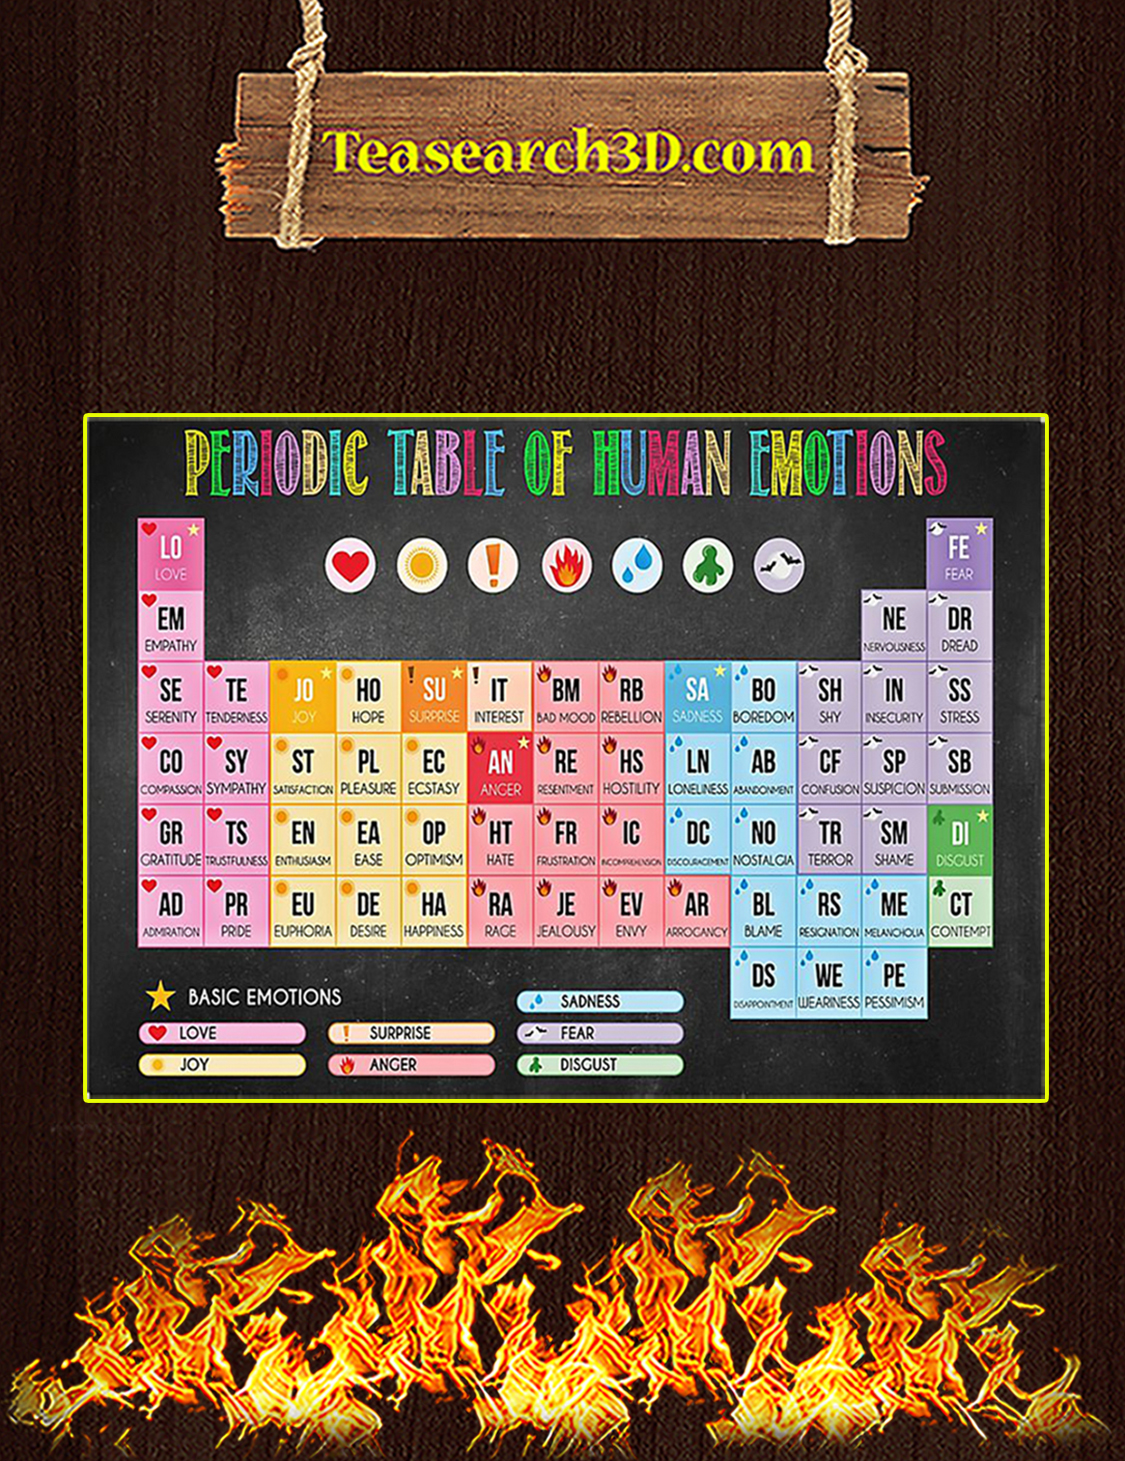 Social worker Periodic table of human emotions poster A3